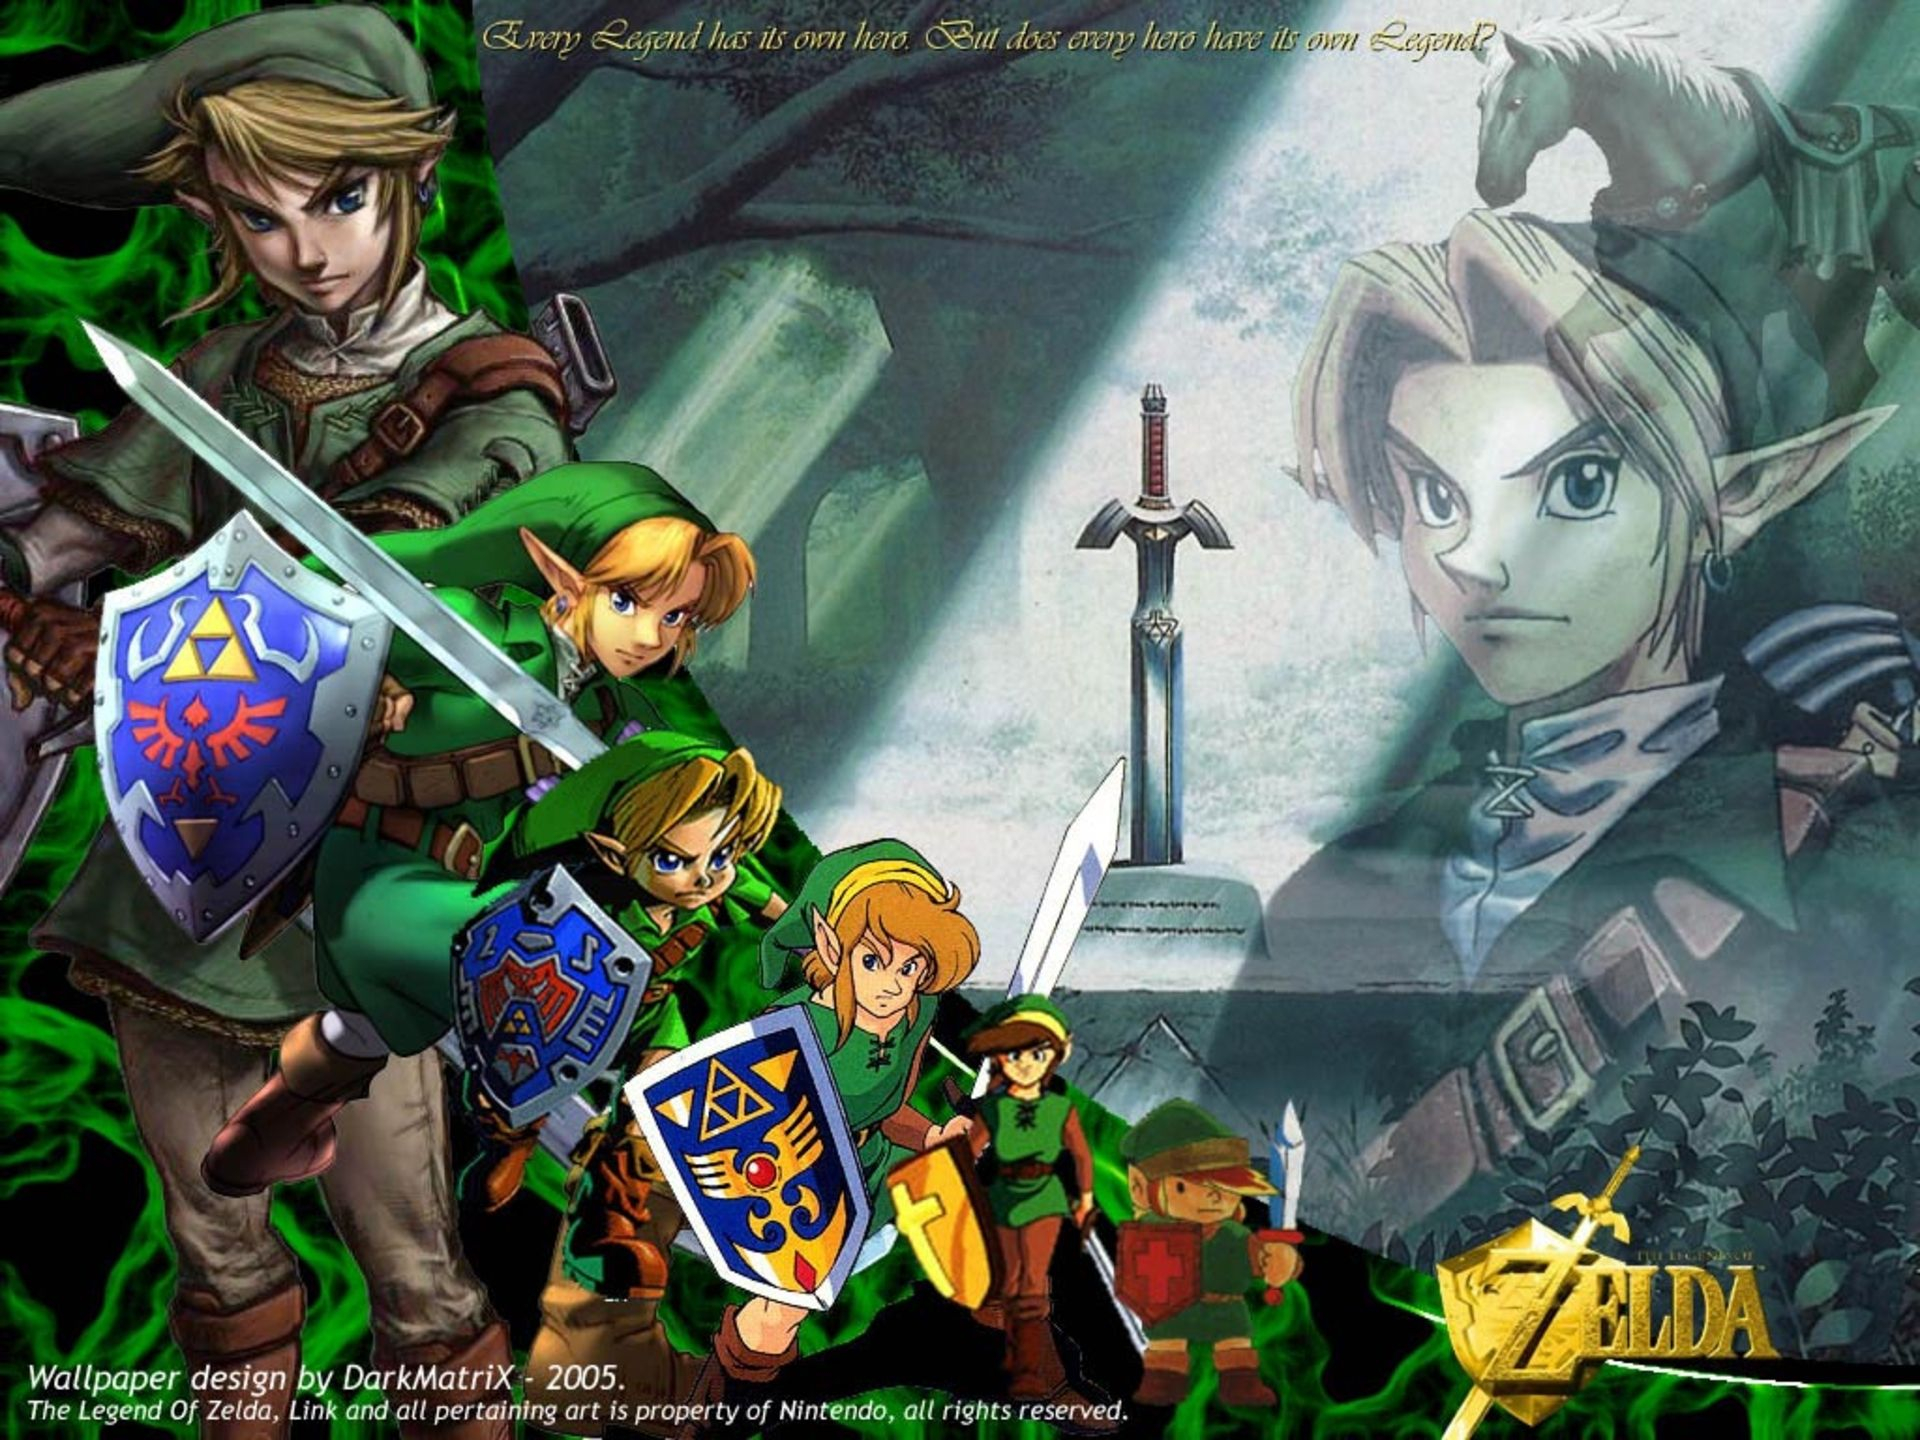 A Link To The Past Game Scenes 1920x1440 Px Hd Desktop